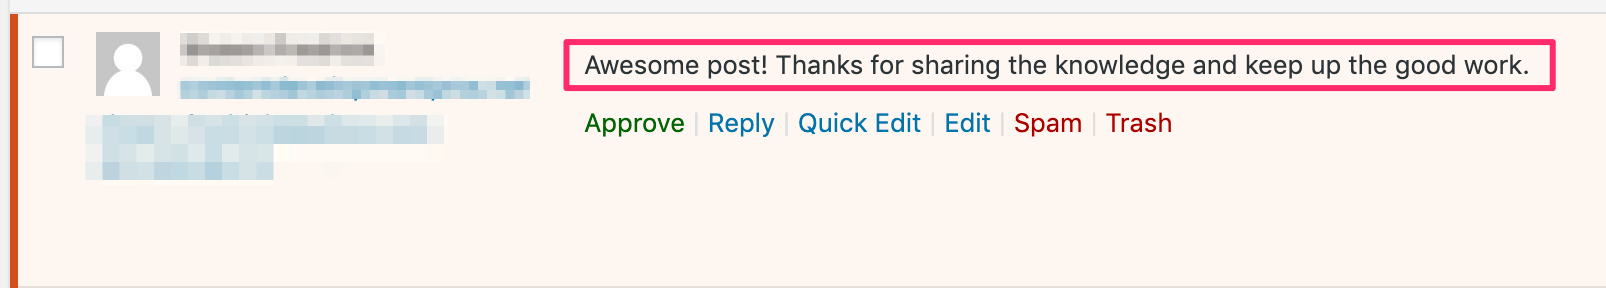 example of comment spam